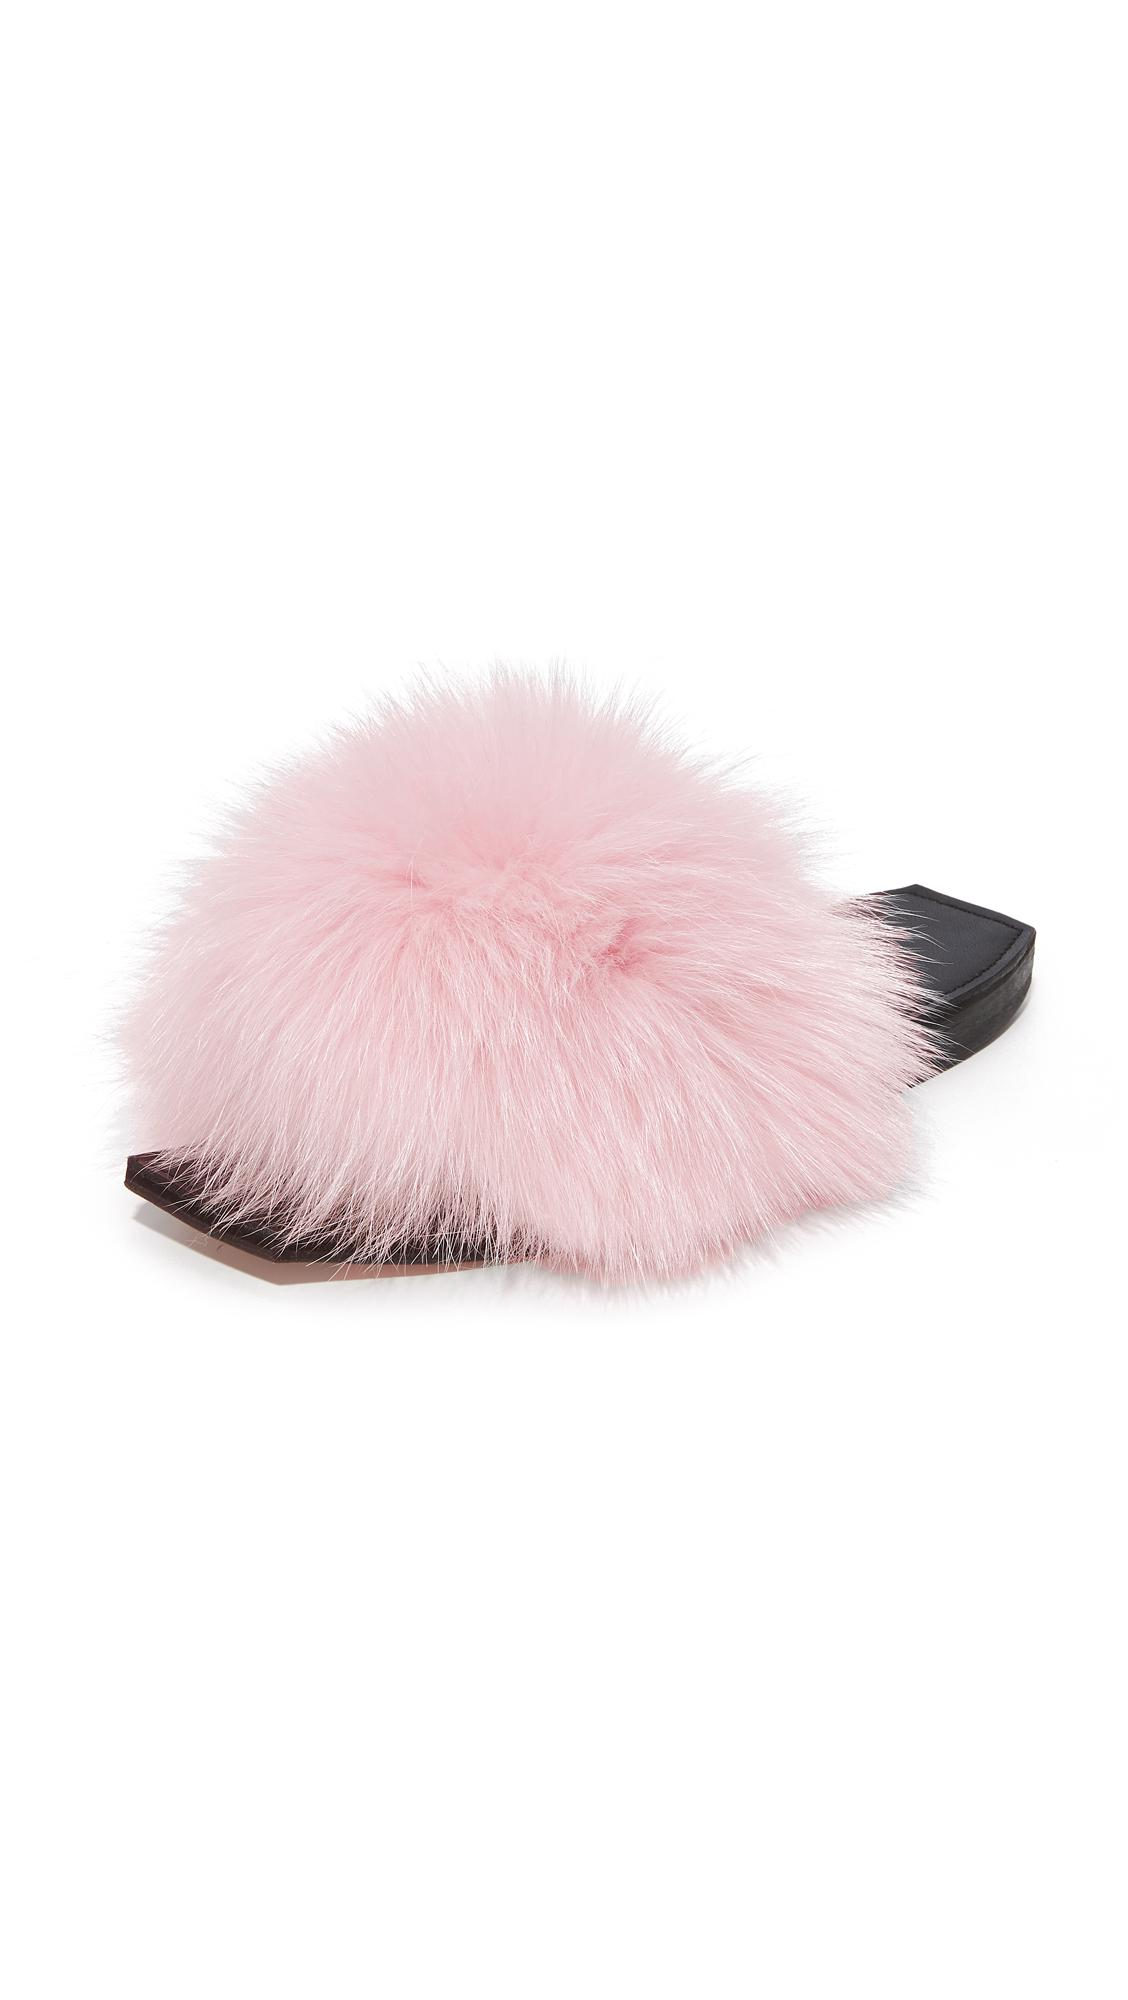 da92321789d62 Lyst - Parme Marin Furry Baby Slide in Pink